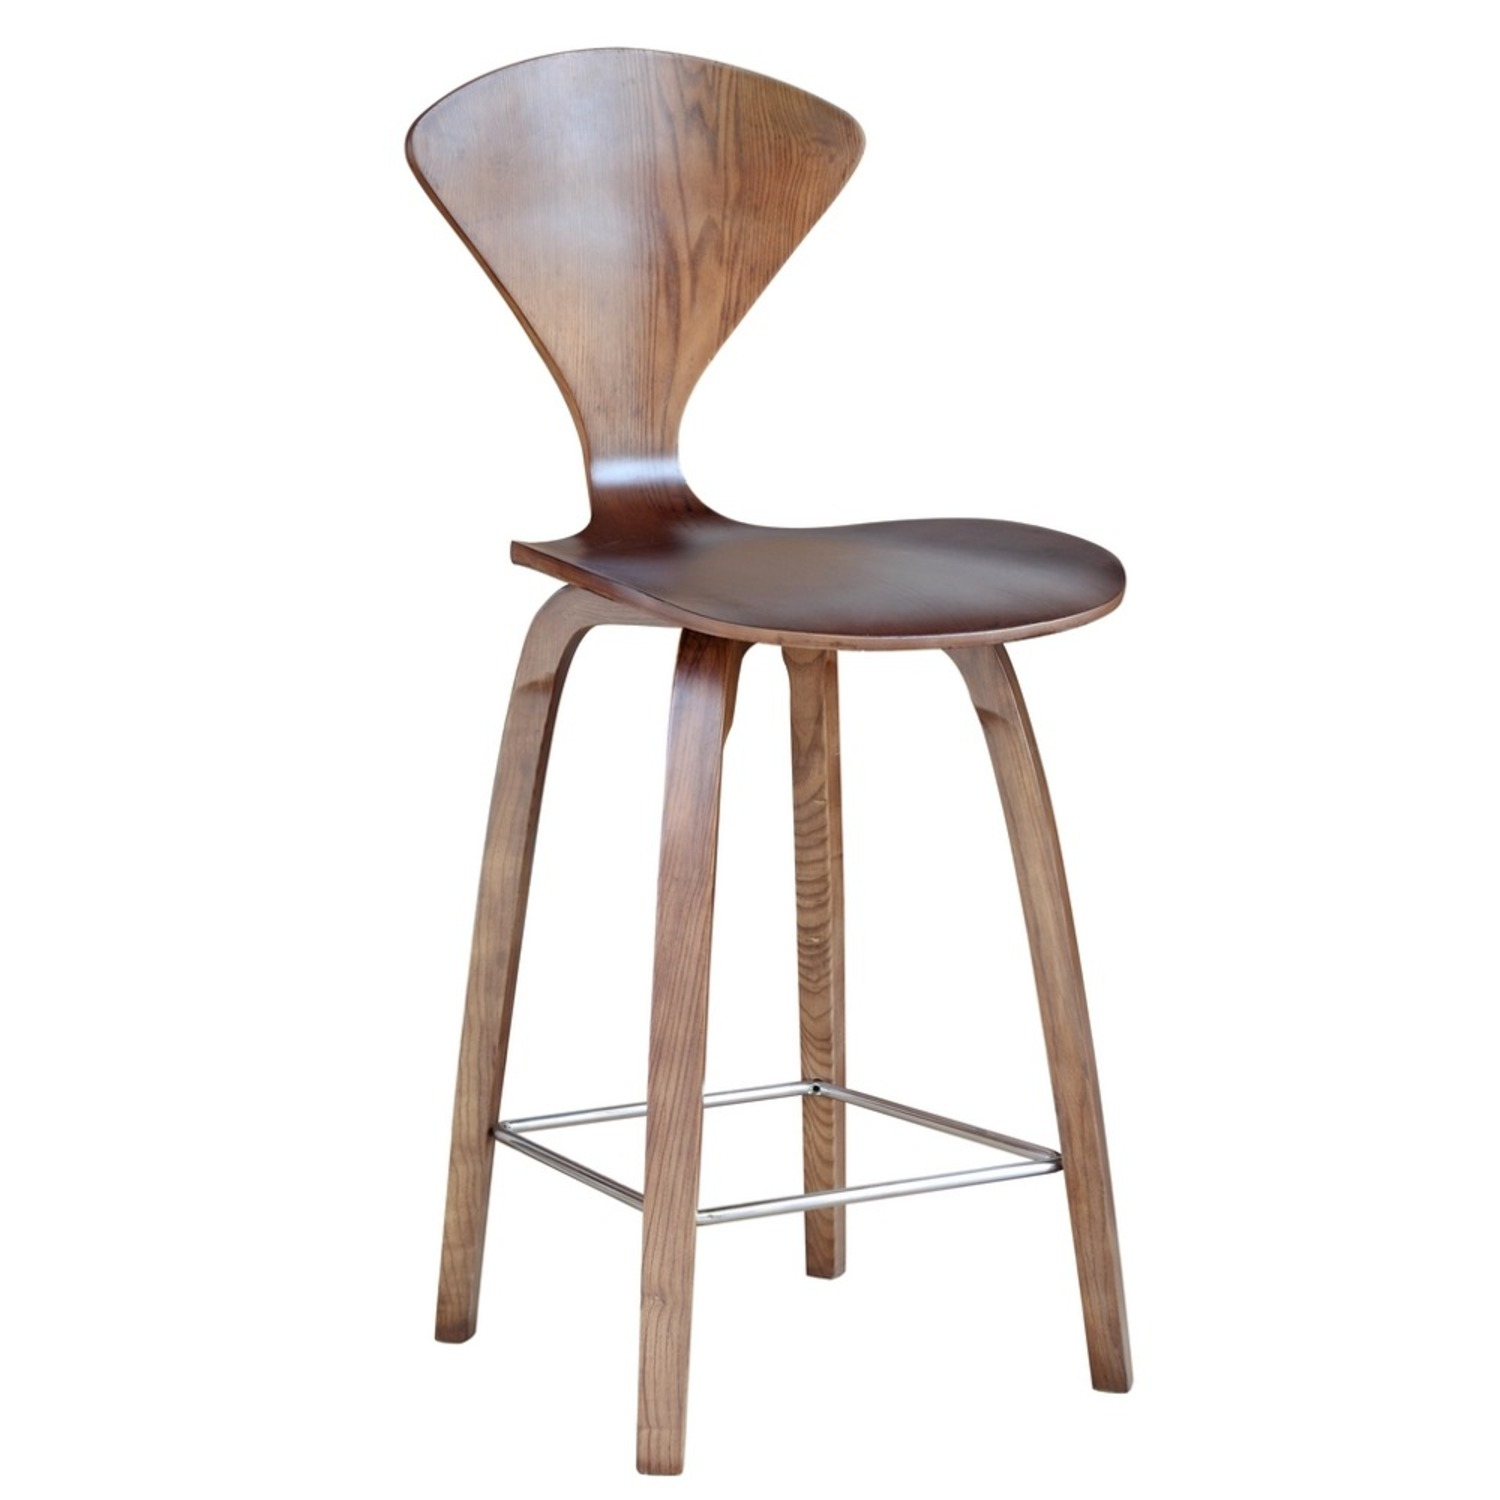 Counter Chair In Walnut Wood Finish - image-0